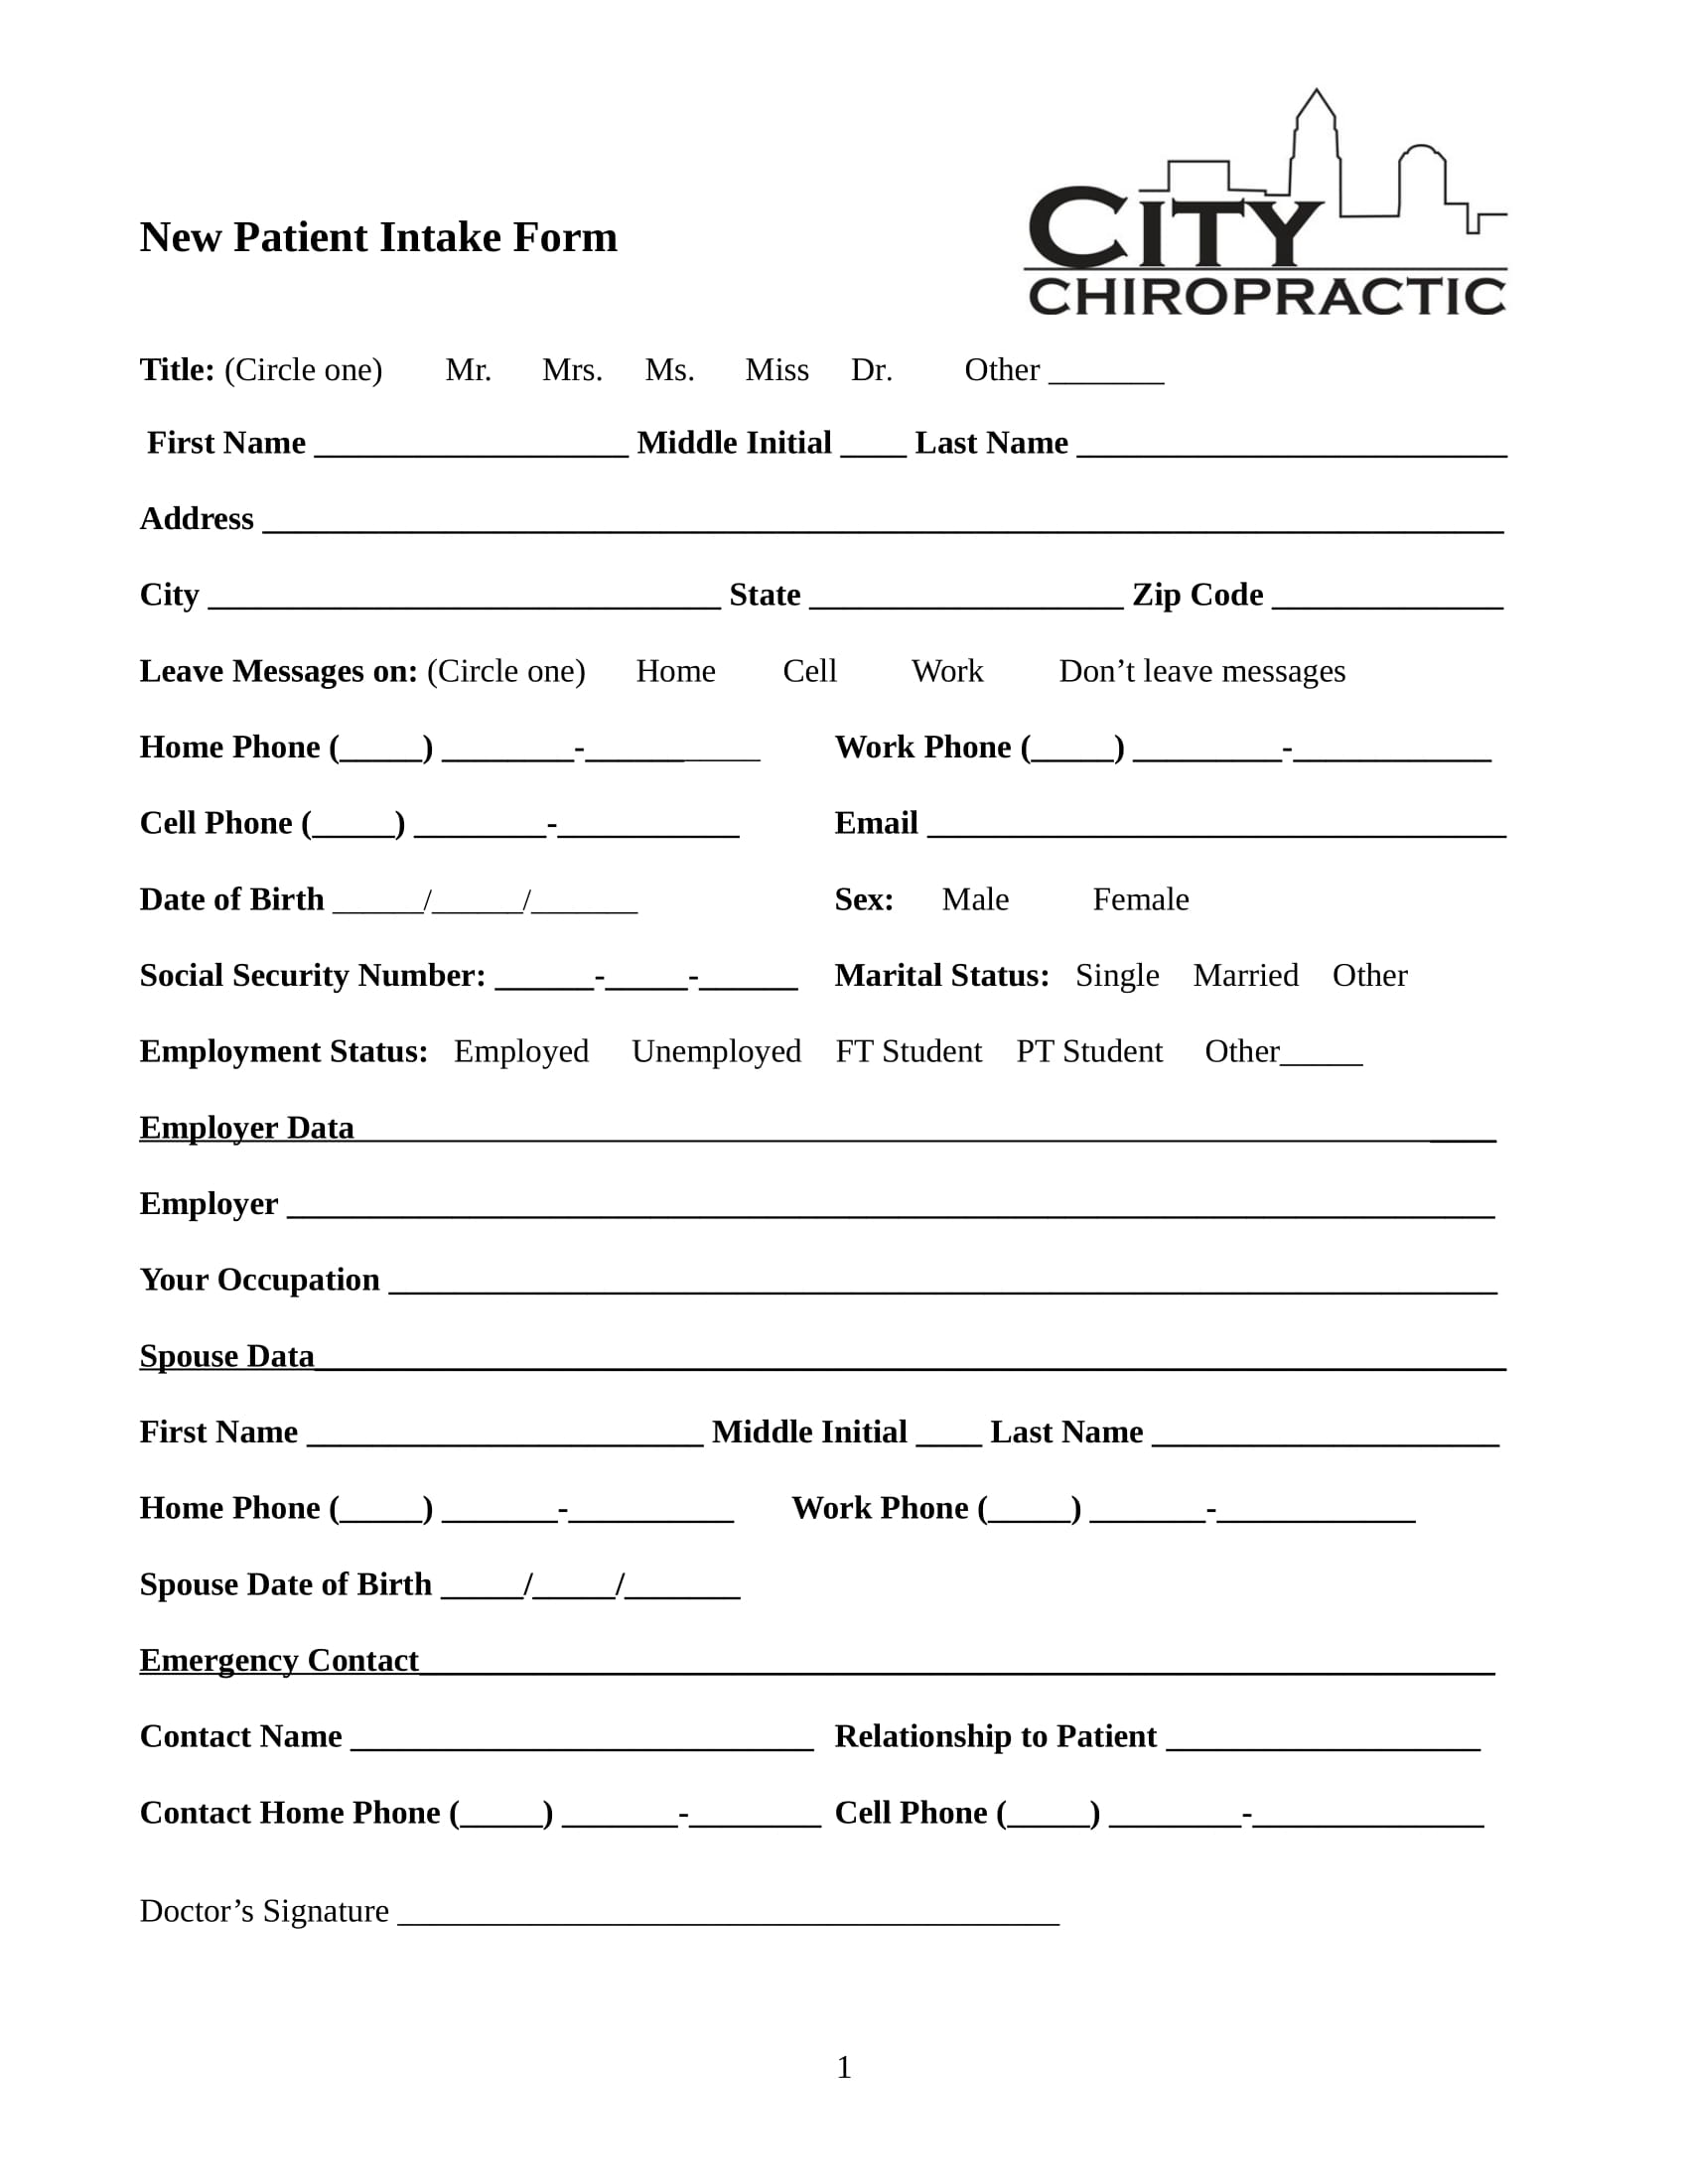 chiropractic new patient intake form in doc 1